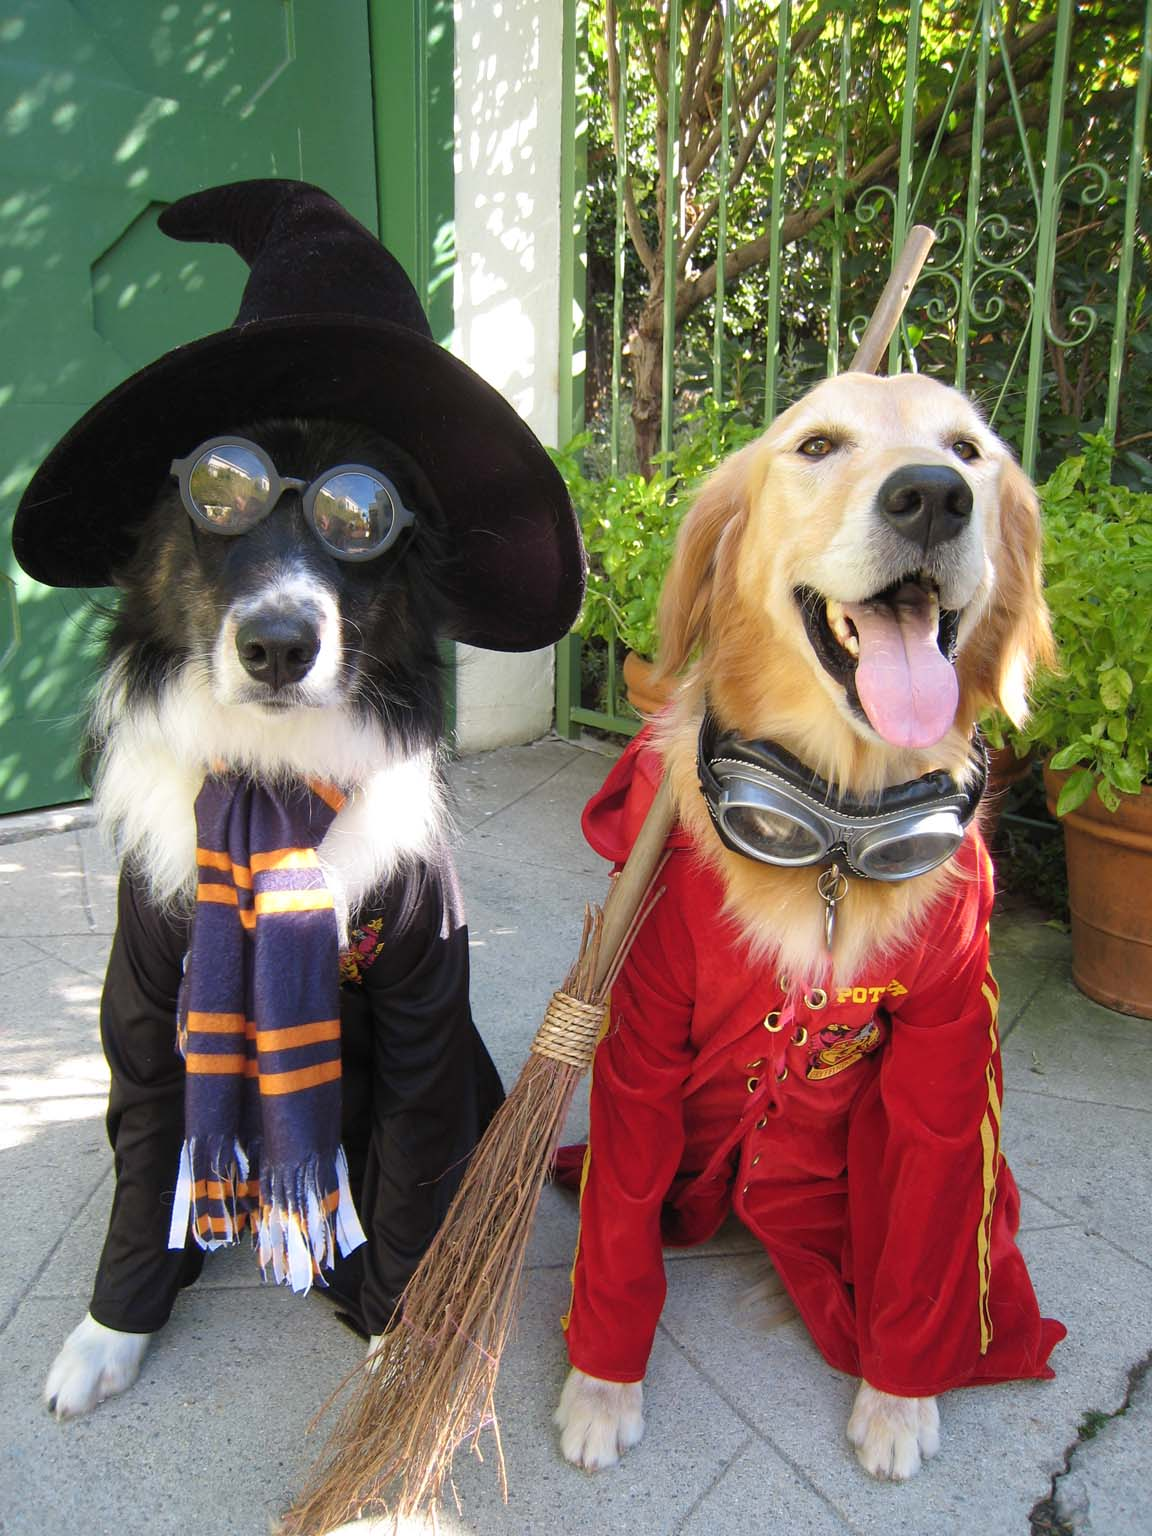 Cute Diy Dog Costumes: DIY Dog Costumes For All Shapes And Sizes